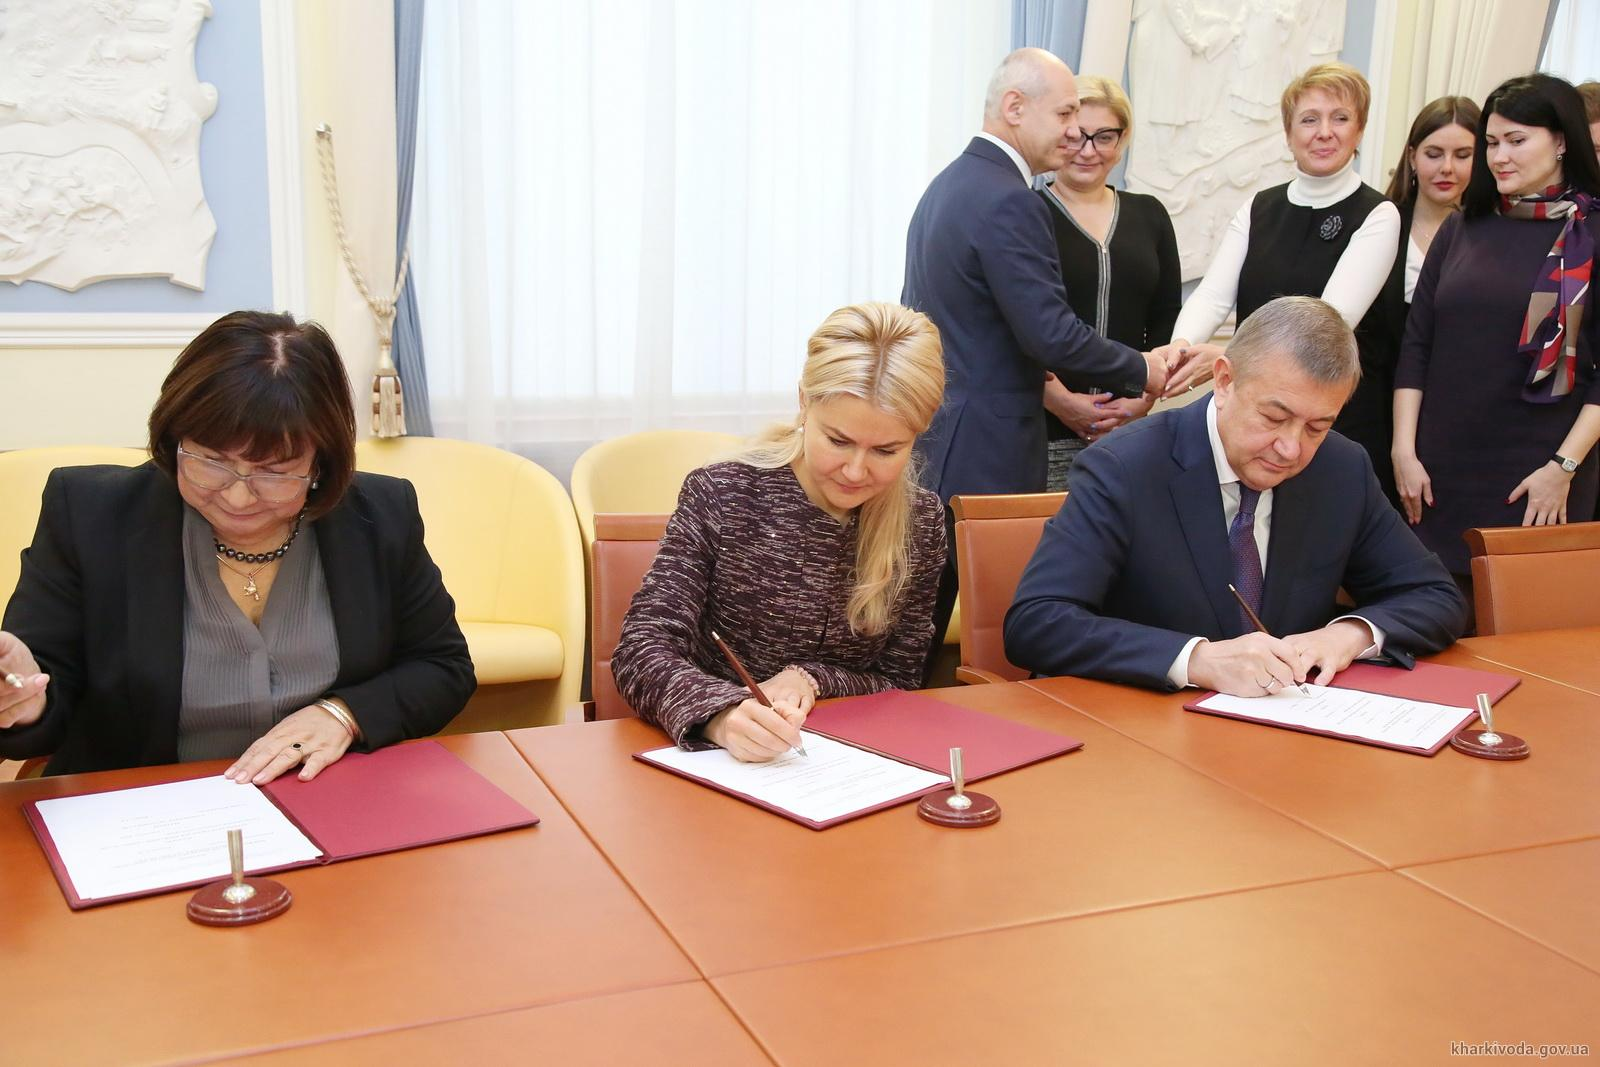 Kharkiv Oblast will implement development projects with support of DESPRO